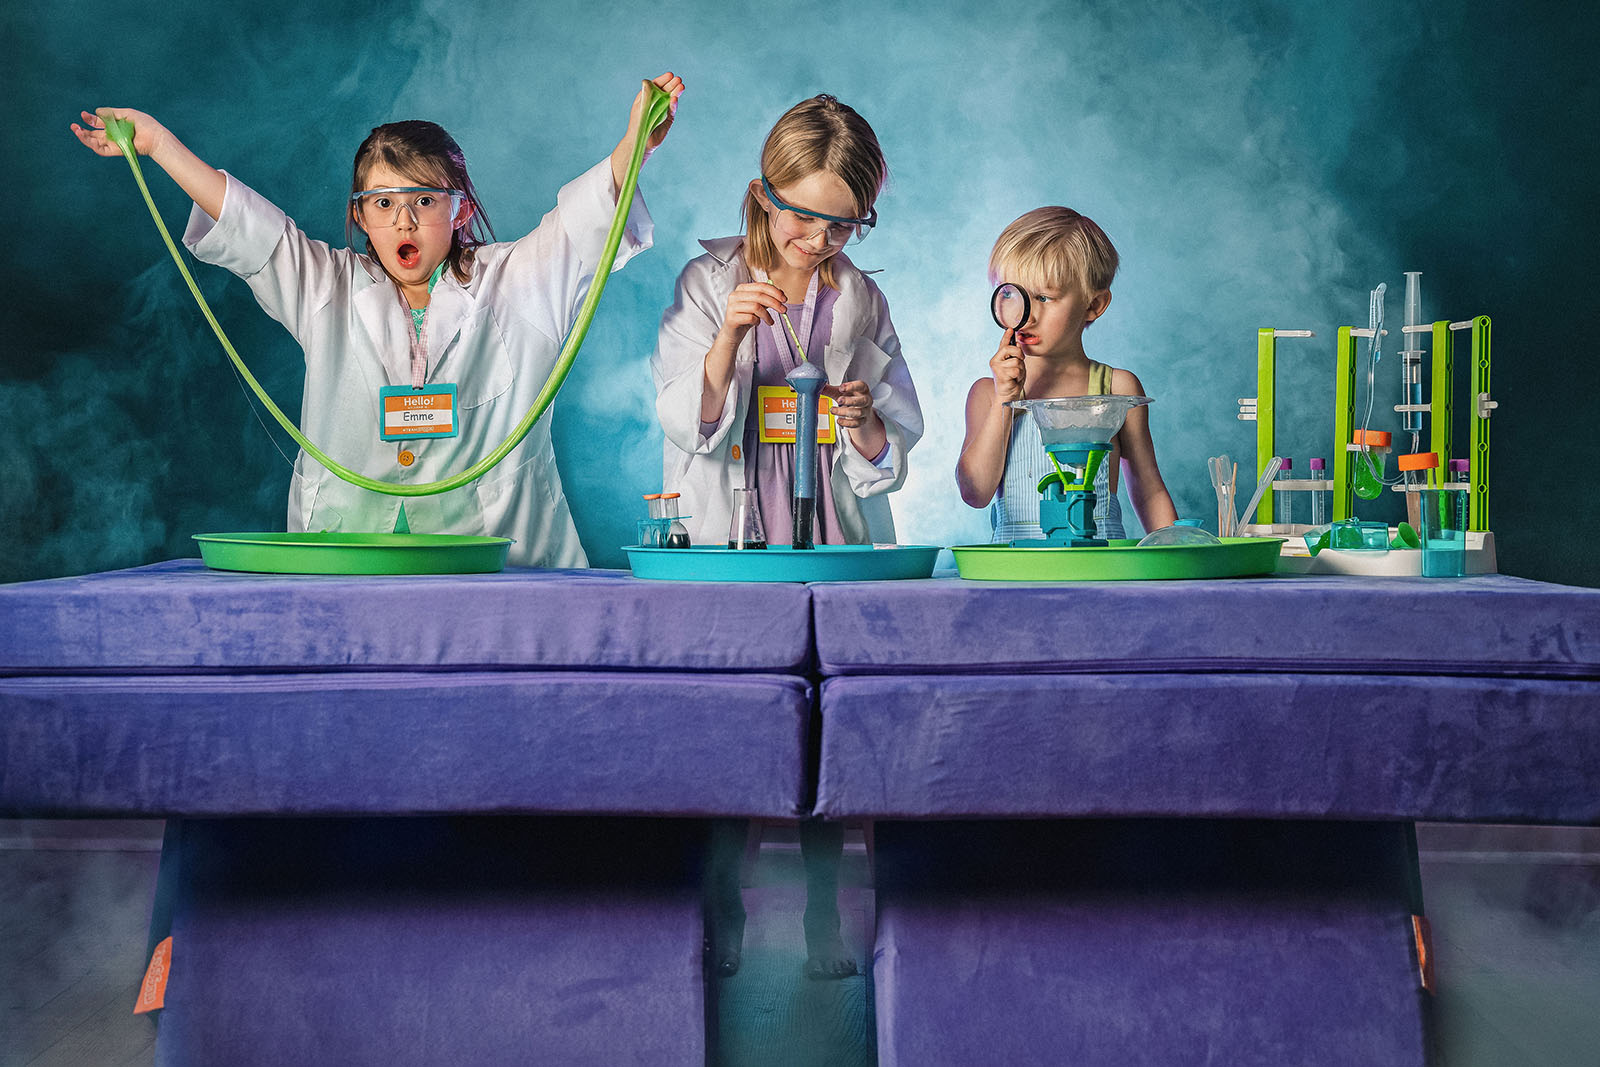 Three kids dressed as scientists, experimenting at their lab table made of a Potion Nugget couch